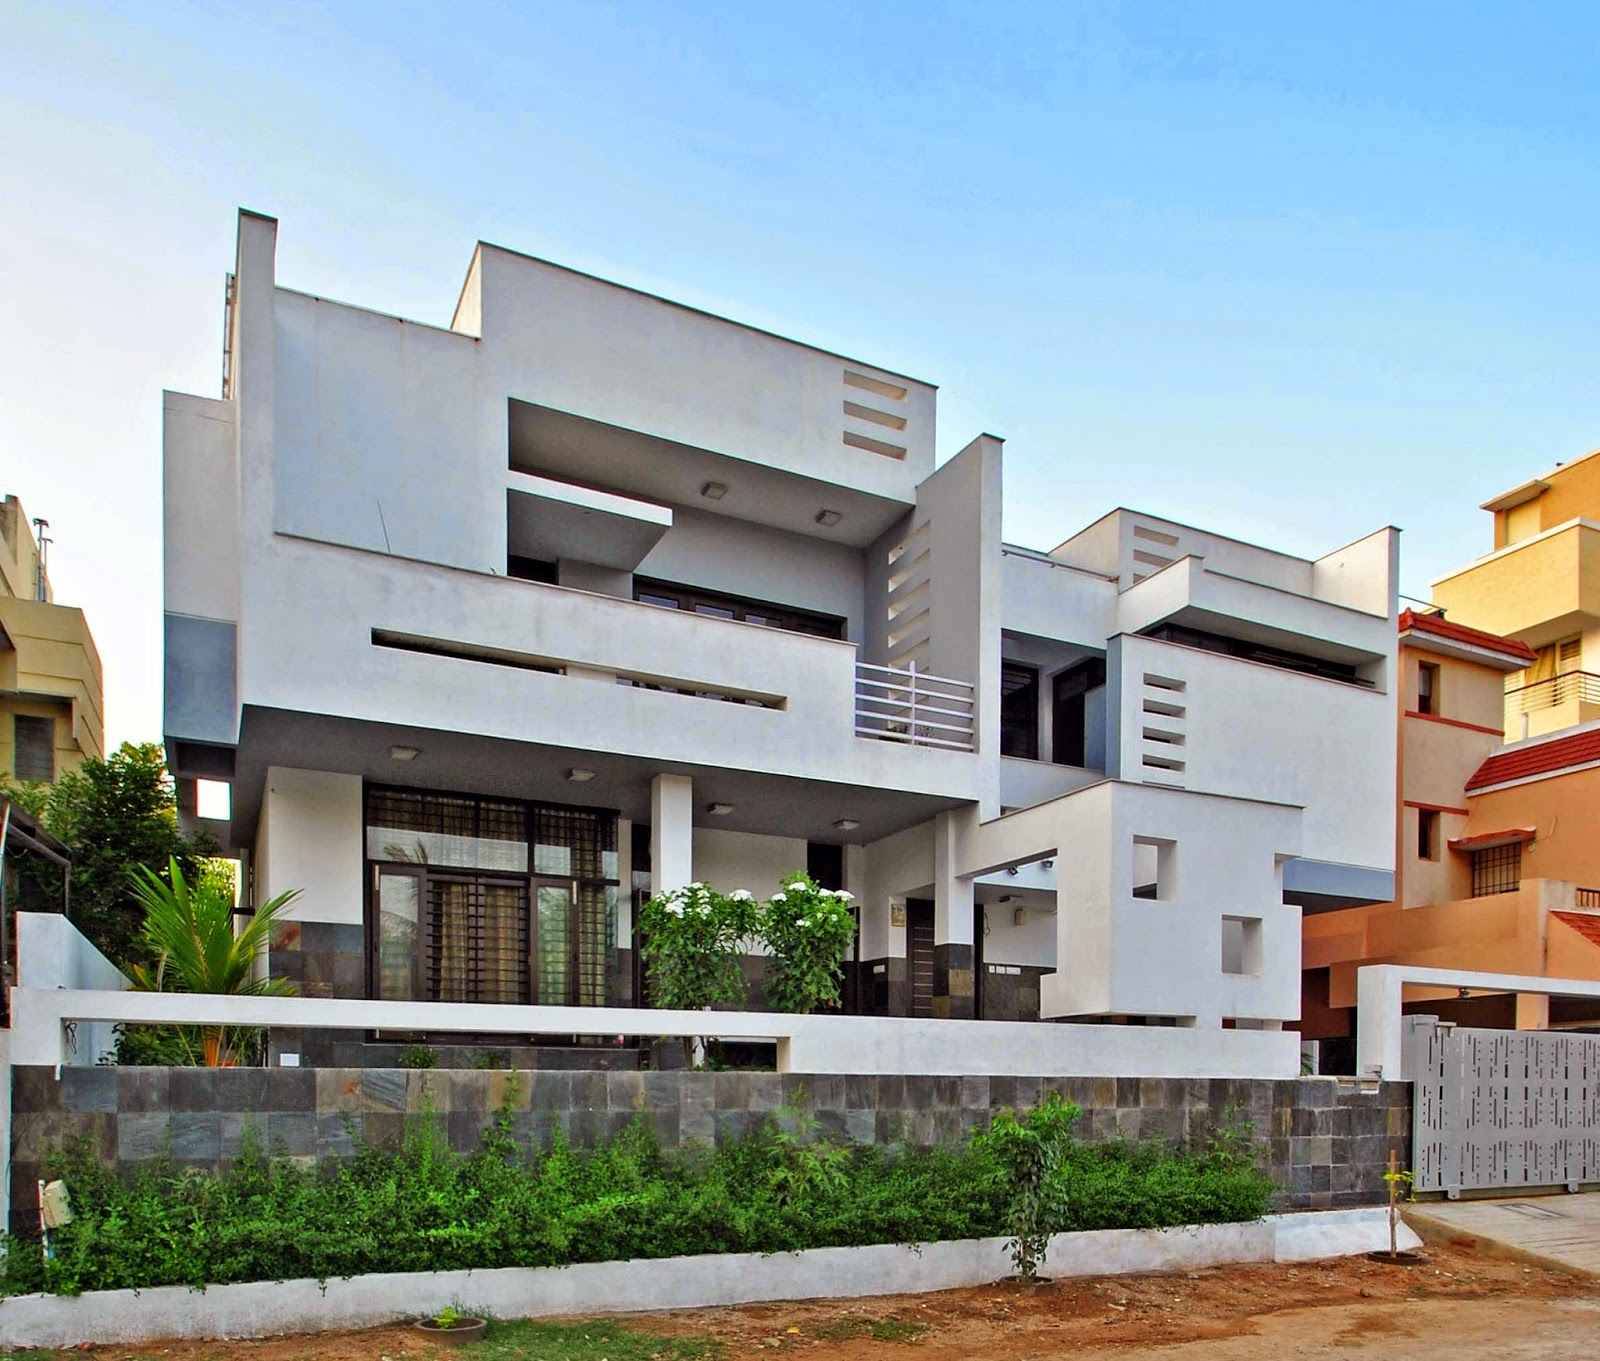 Murali architects residence for mr jude and family at House architecture chennai